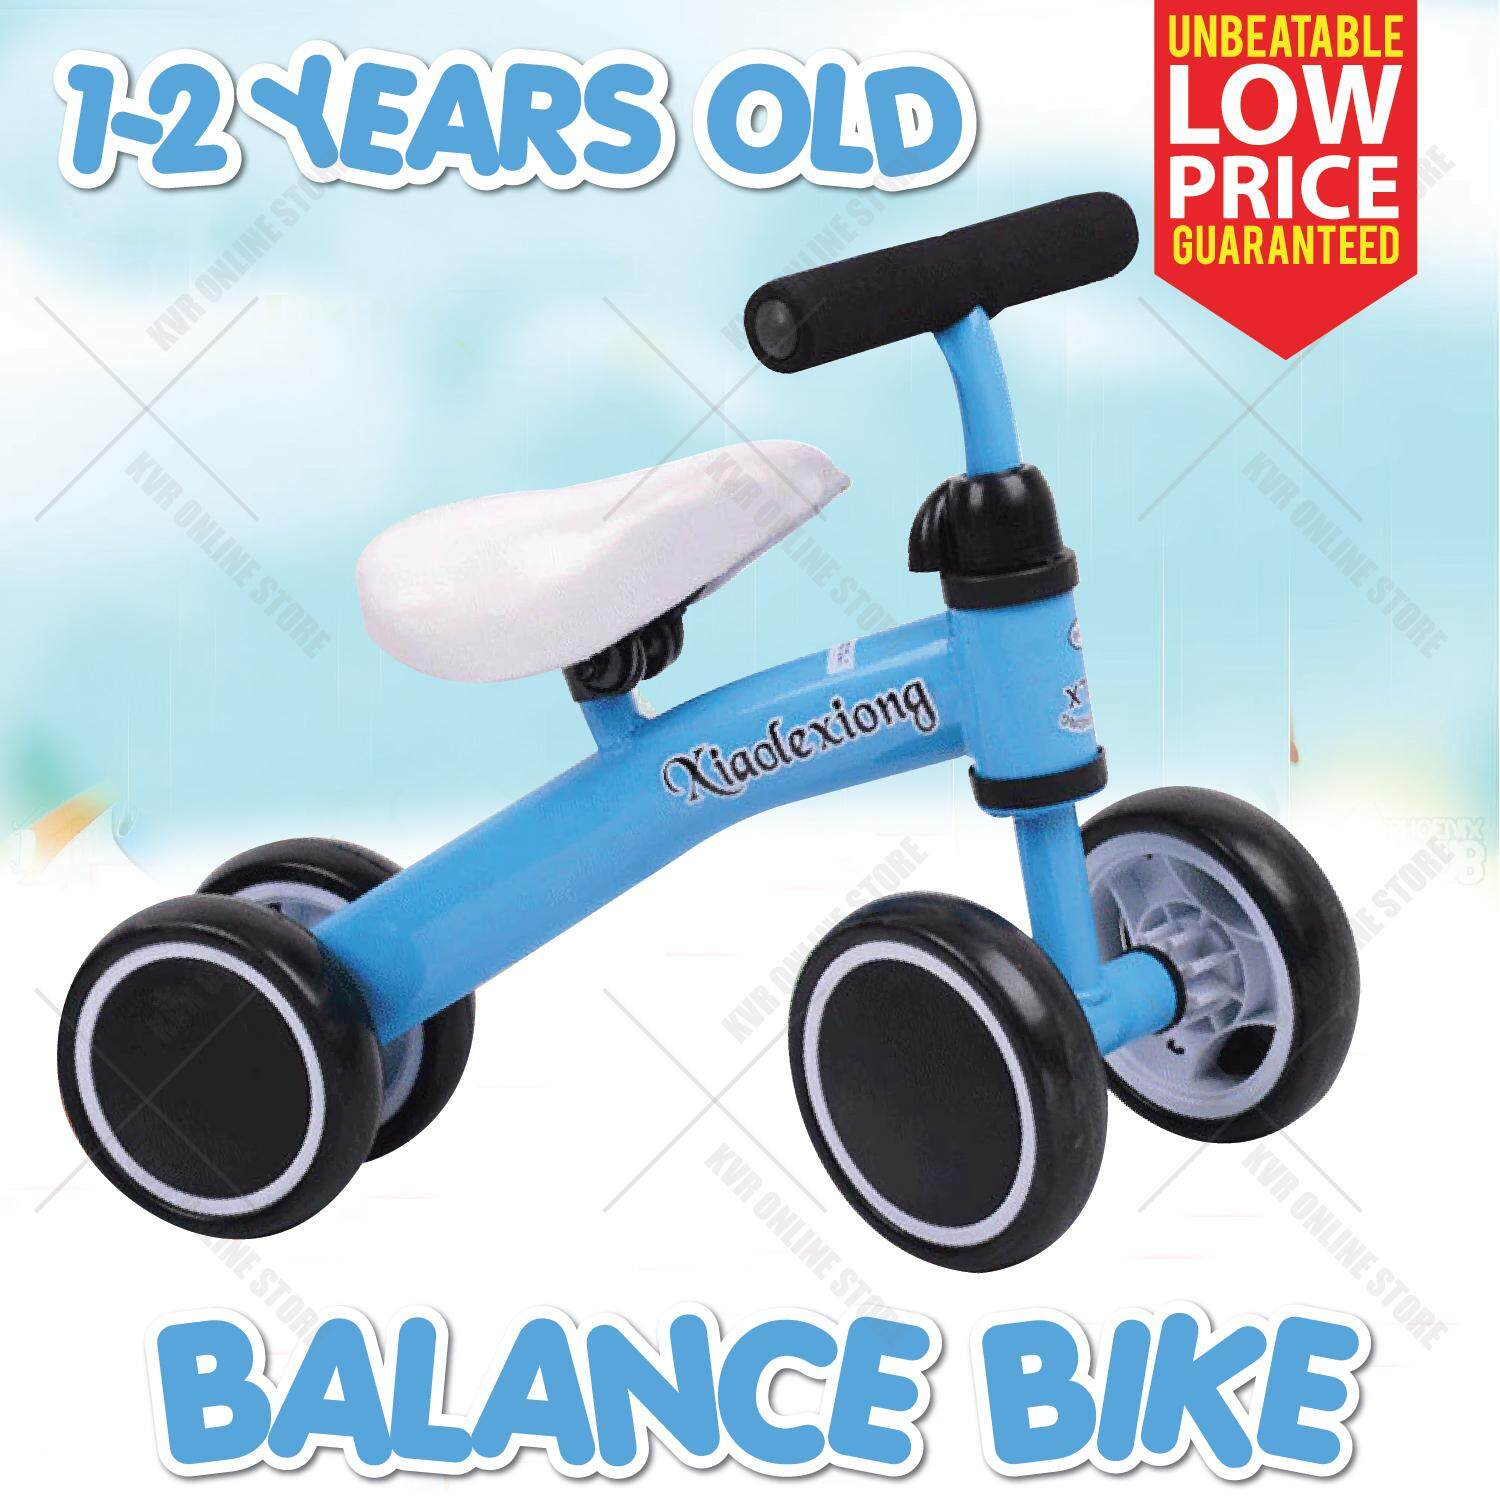 Baby Children Kid Balance Bike No Pedal Training Adjustable Seat 1-2y By Kvr Online Store.